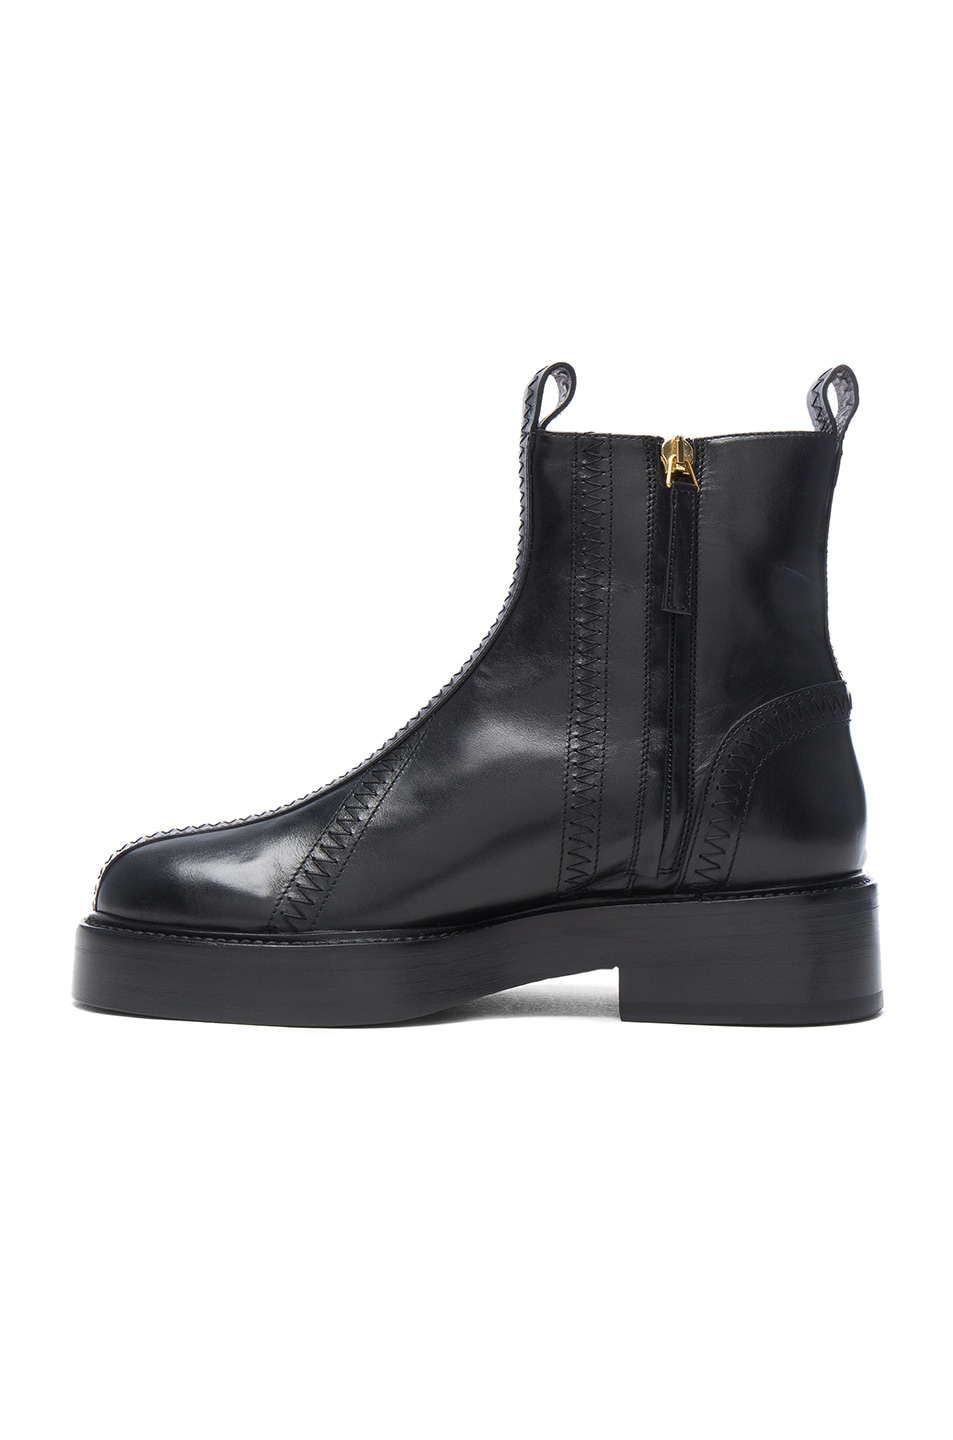 Image 5 of Ellery Leather Boots in Black & Gold